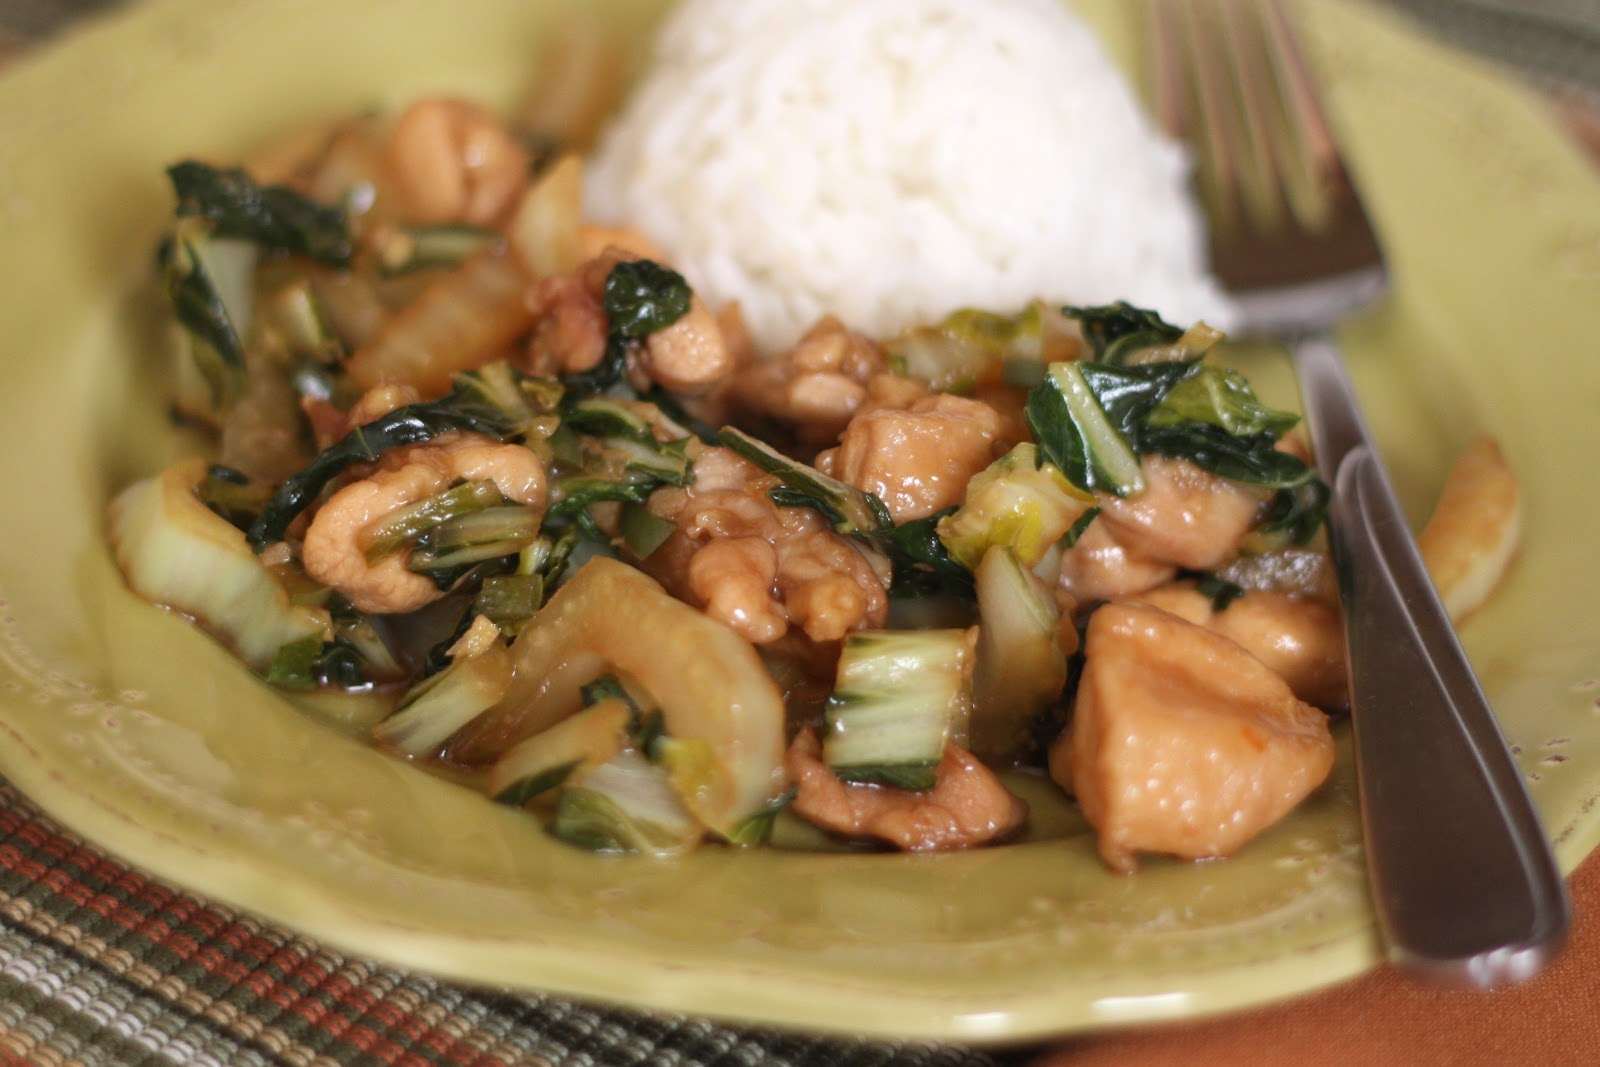 Barefeet In The Kitchen: Chicken and Bok Choy Stir Fry